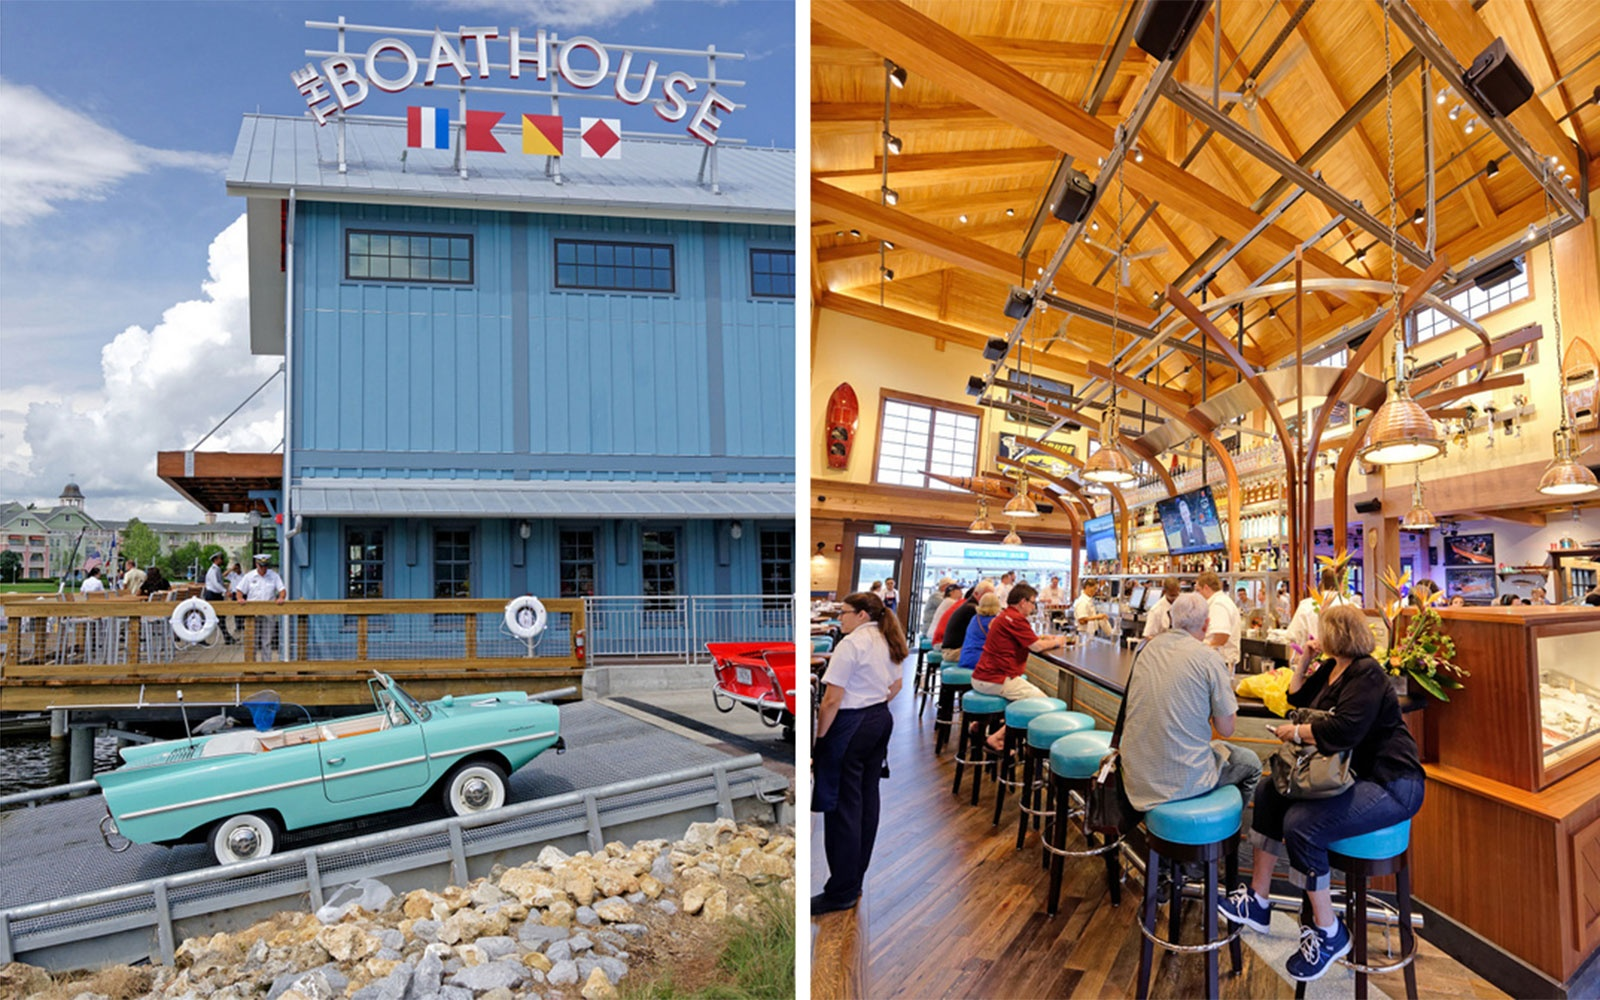 The Boathouse restaurant at The Landing in Downtown Disney, FL